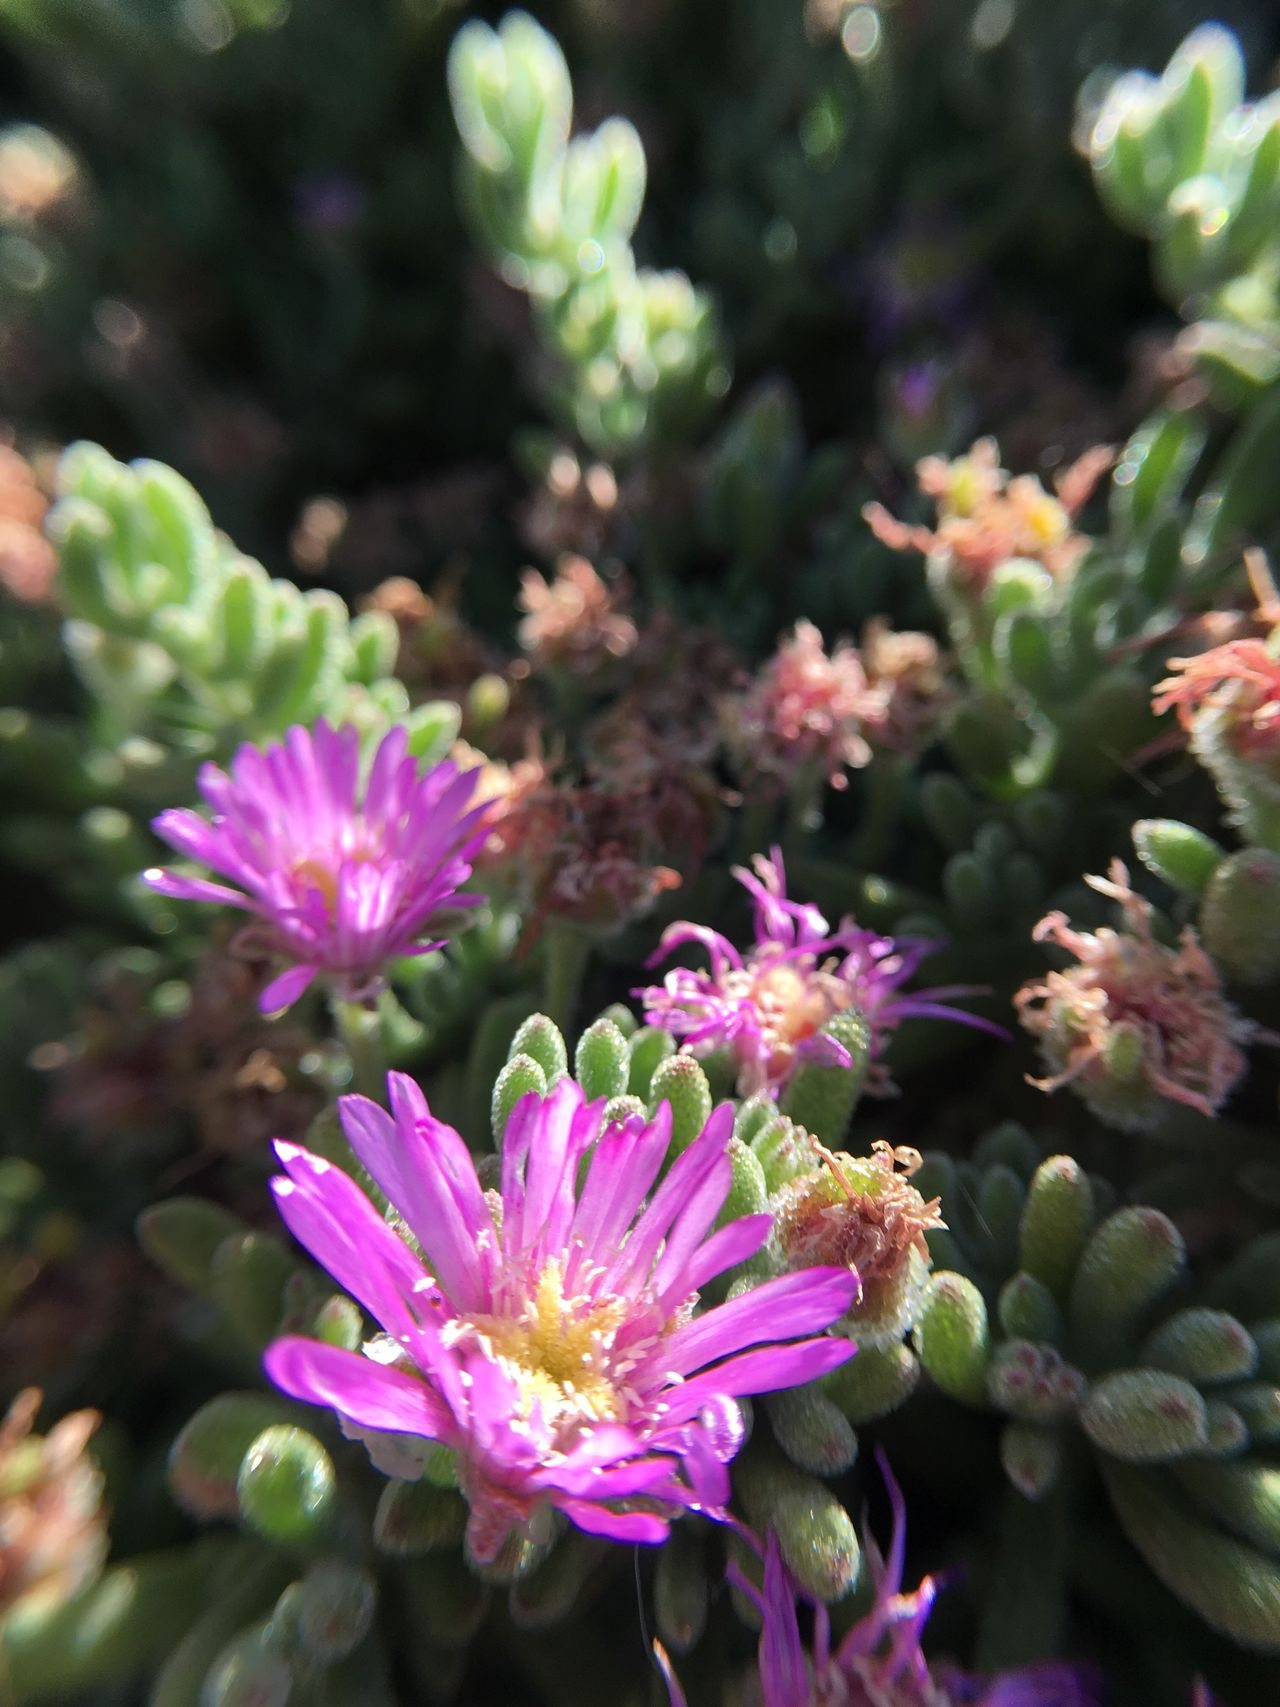 Flower Growth Plant Nature Beauty In Nature Freshness Fragility No People Day Pink Color Petal Close-up Flower Head Outdoors Blooming Succulents Succulent Purple Flower Purple Macro Blossom Drought Resistant Garden Bloom